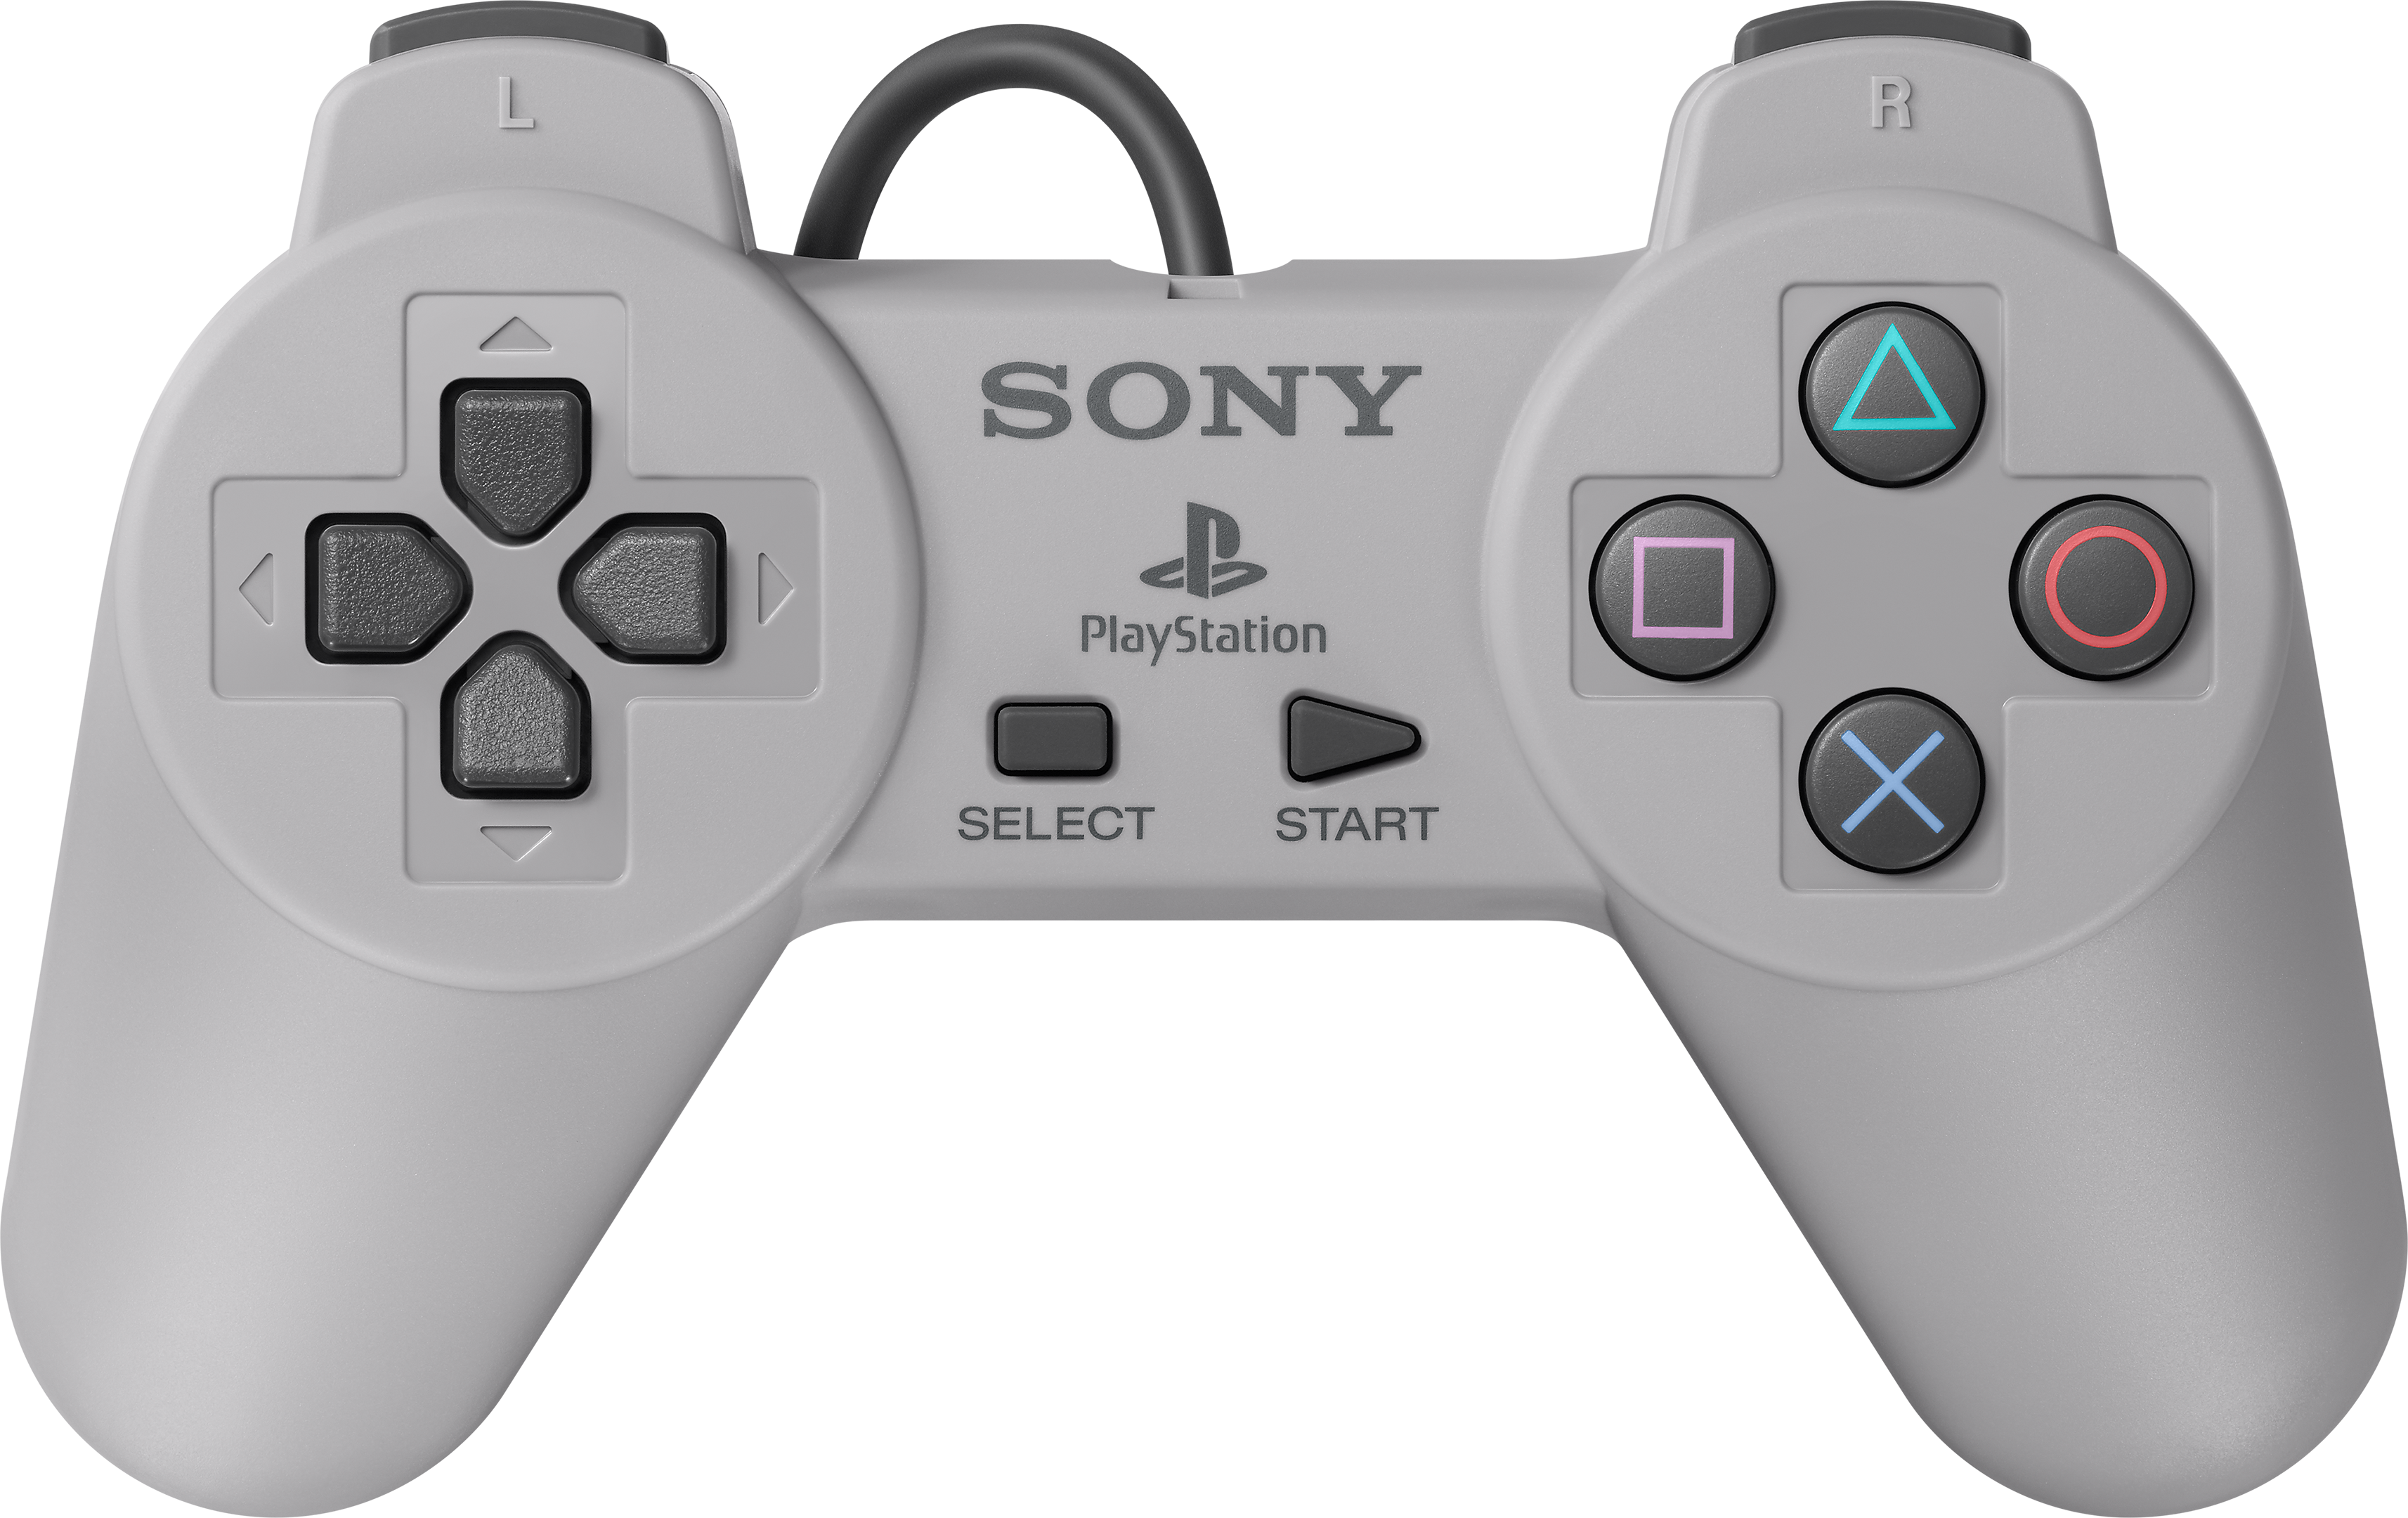 Will the Playstation Classic be worth more money in a few years? - Quora